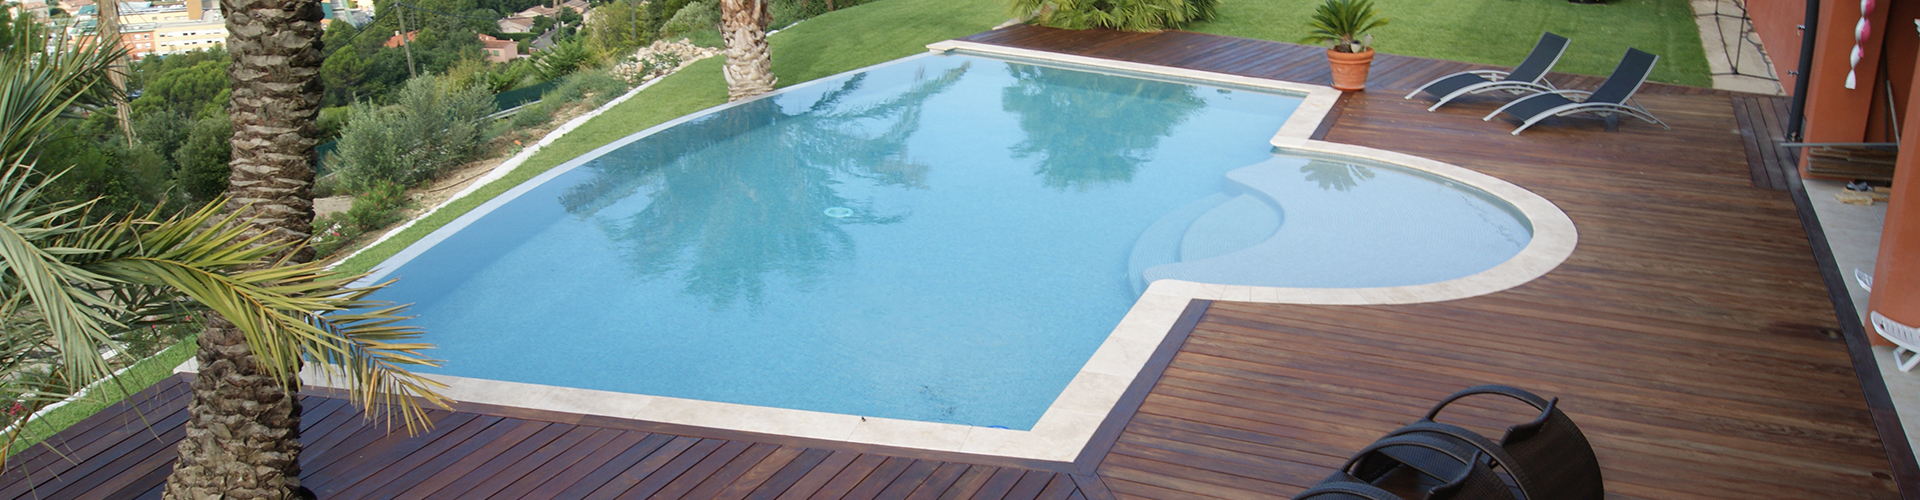 Piscine d bordement sur mesure centerspas for Plan d une piscine miroir